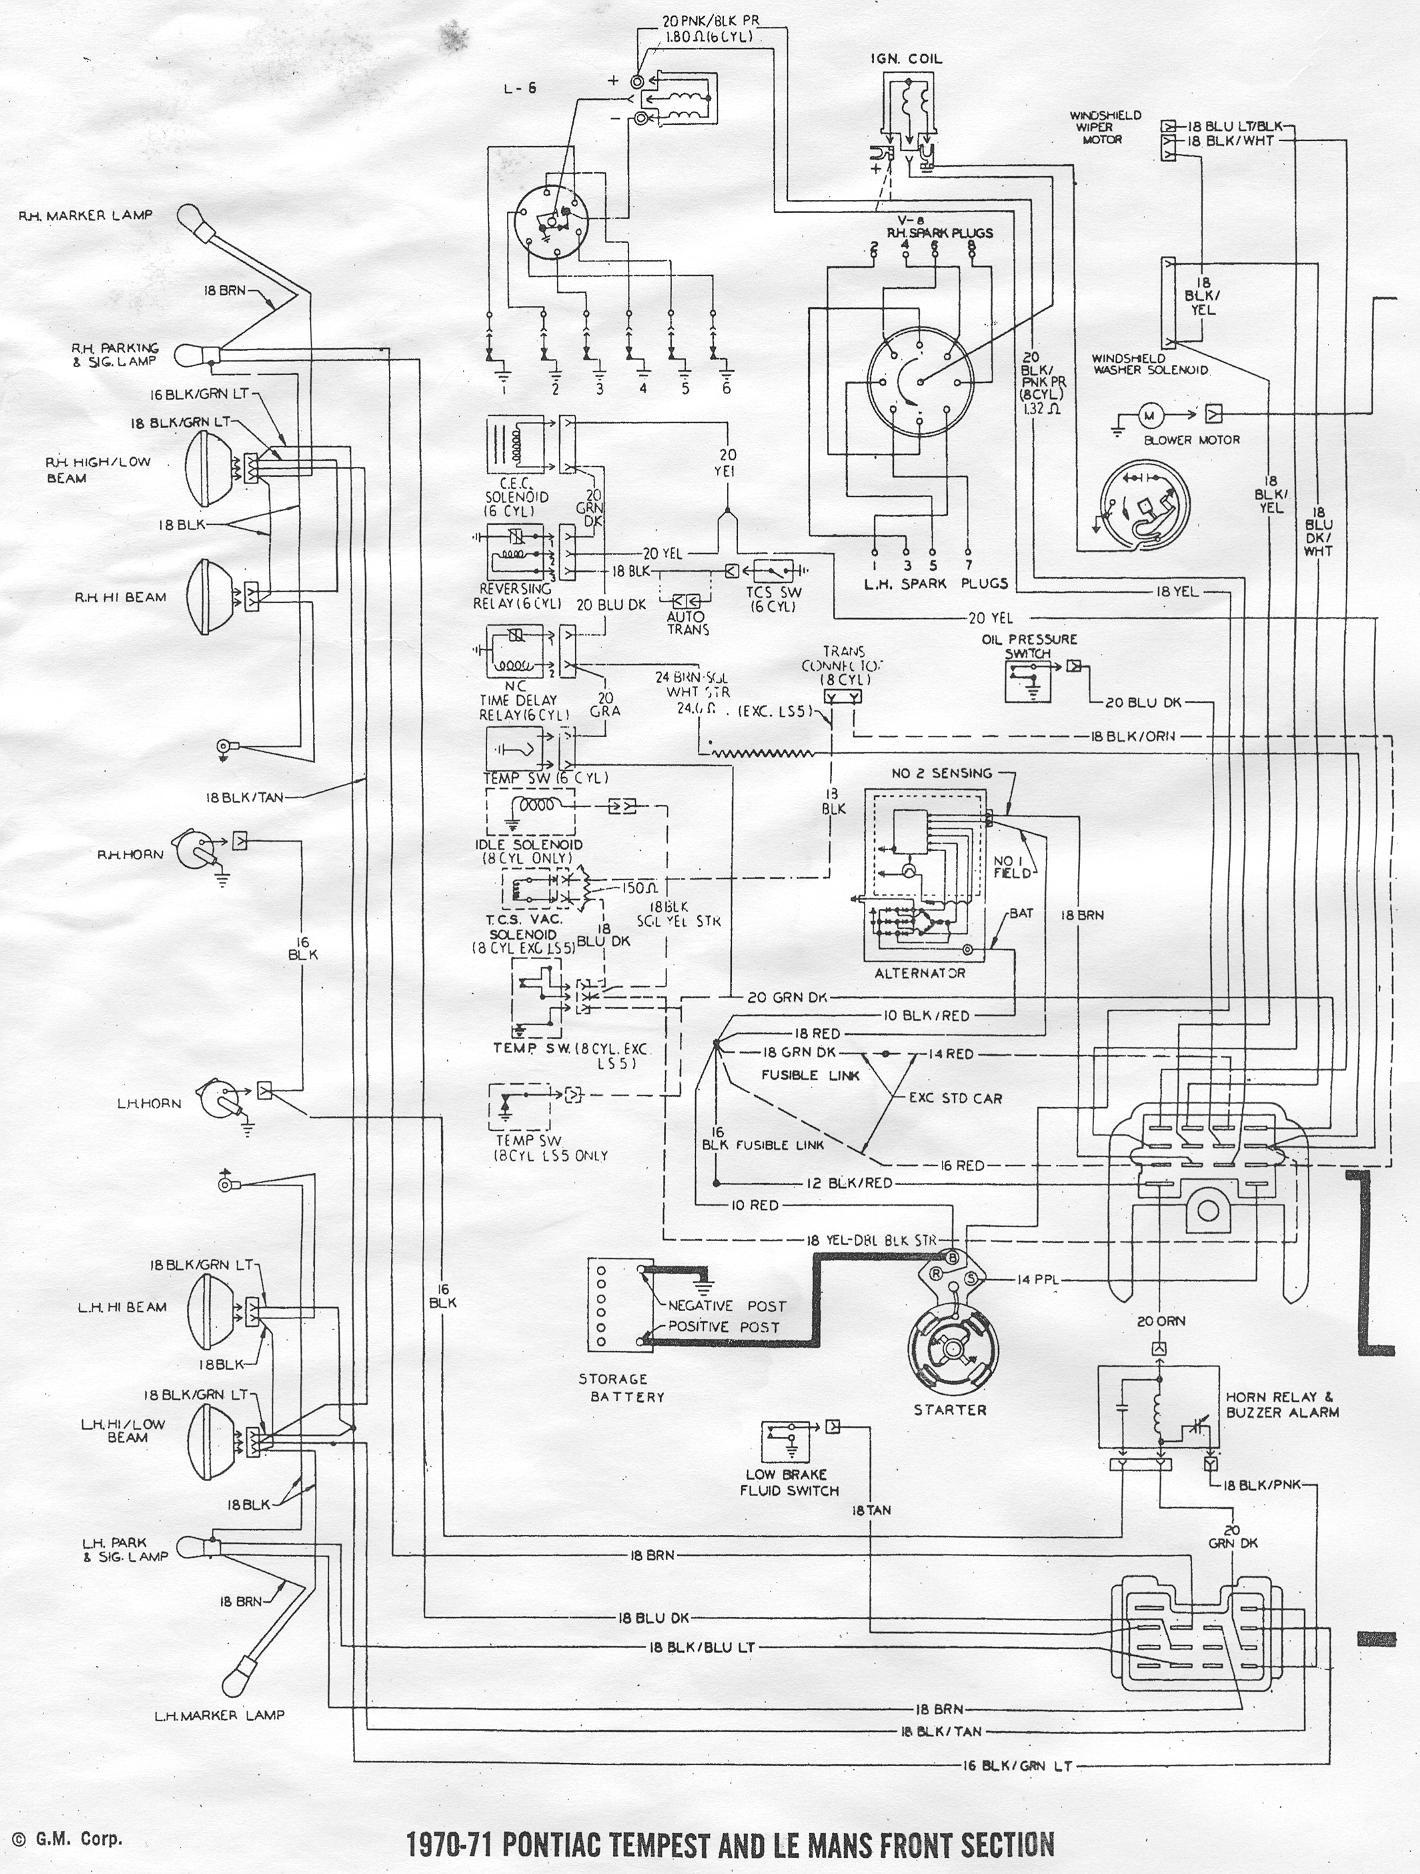 Gto Wiring Diagram Scans Pontiac Forum 1974 Mobile Home Electrical Click Image For Larger Version Name 70 71 Page1